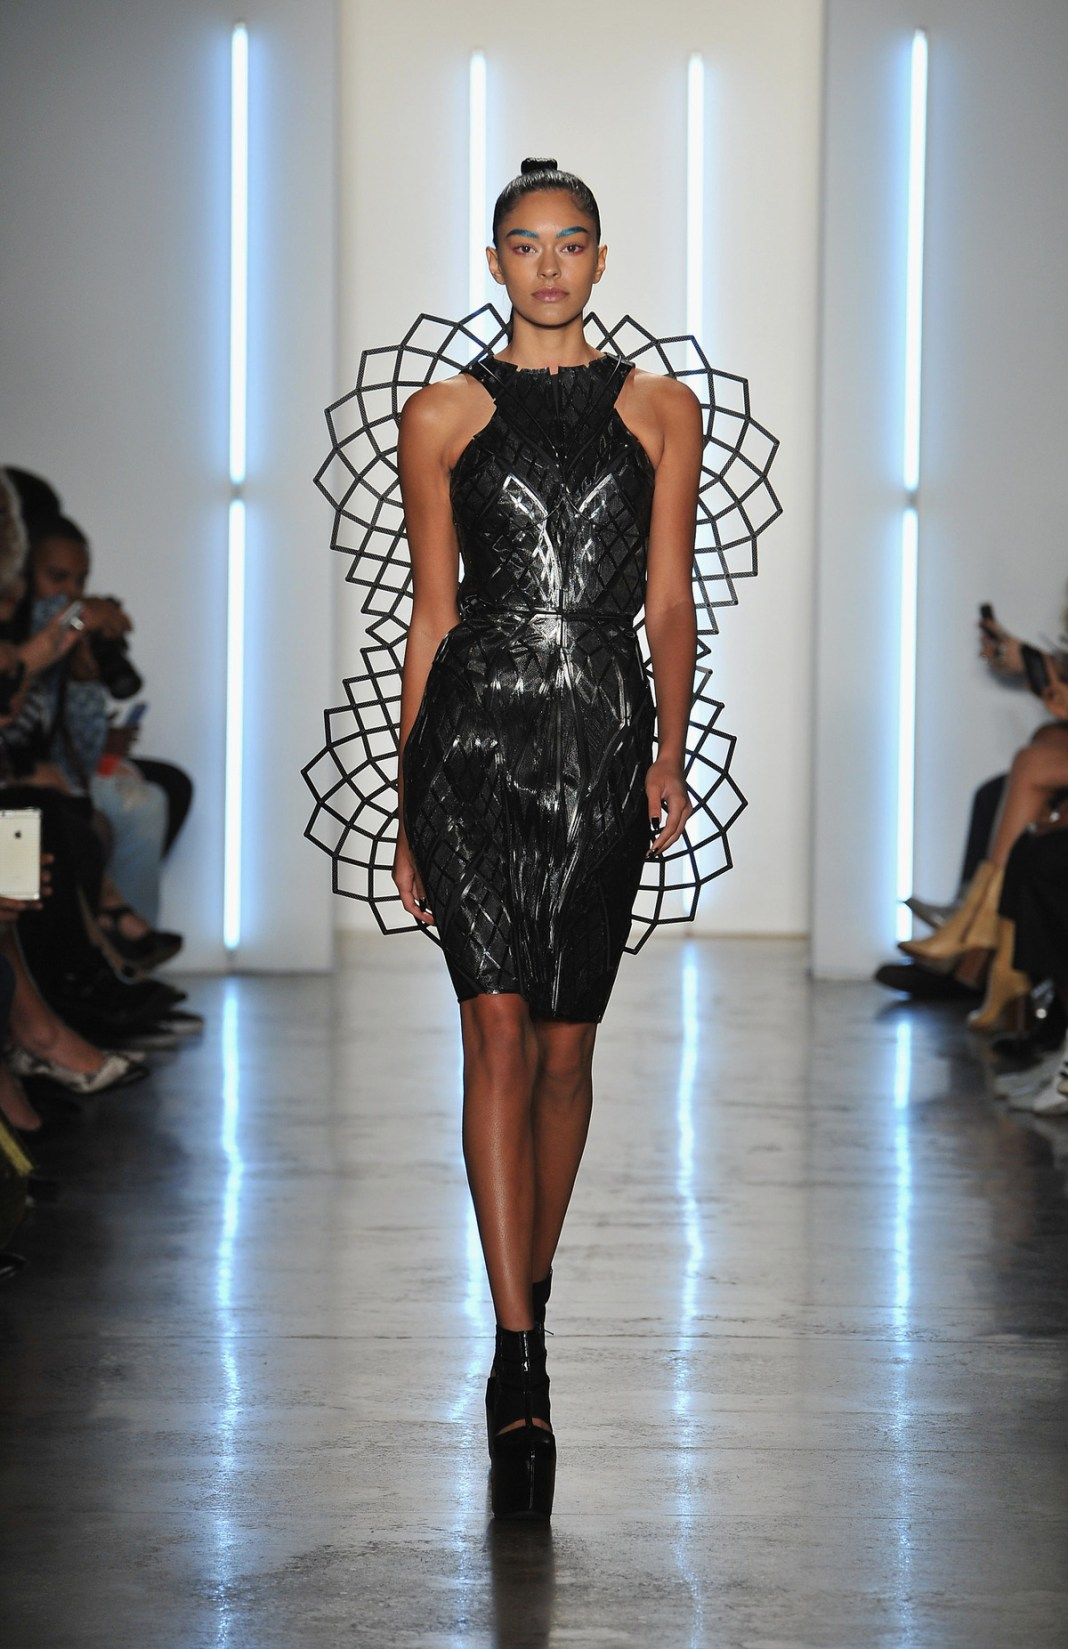 NEW YORK, NY - SEPTEMBER 11:  A model walks down the runway during the Chromat fashion show during Spring 2016 New York Fashion Week at Milk Studios on September 11, 2015 in New York City.  (Photo by Fernando Leon/Getty Images)